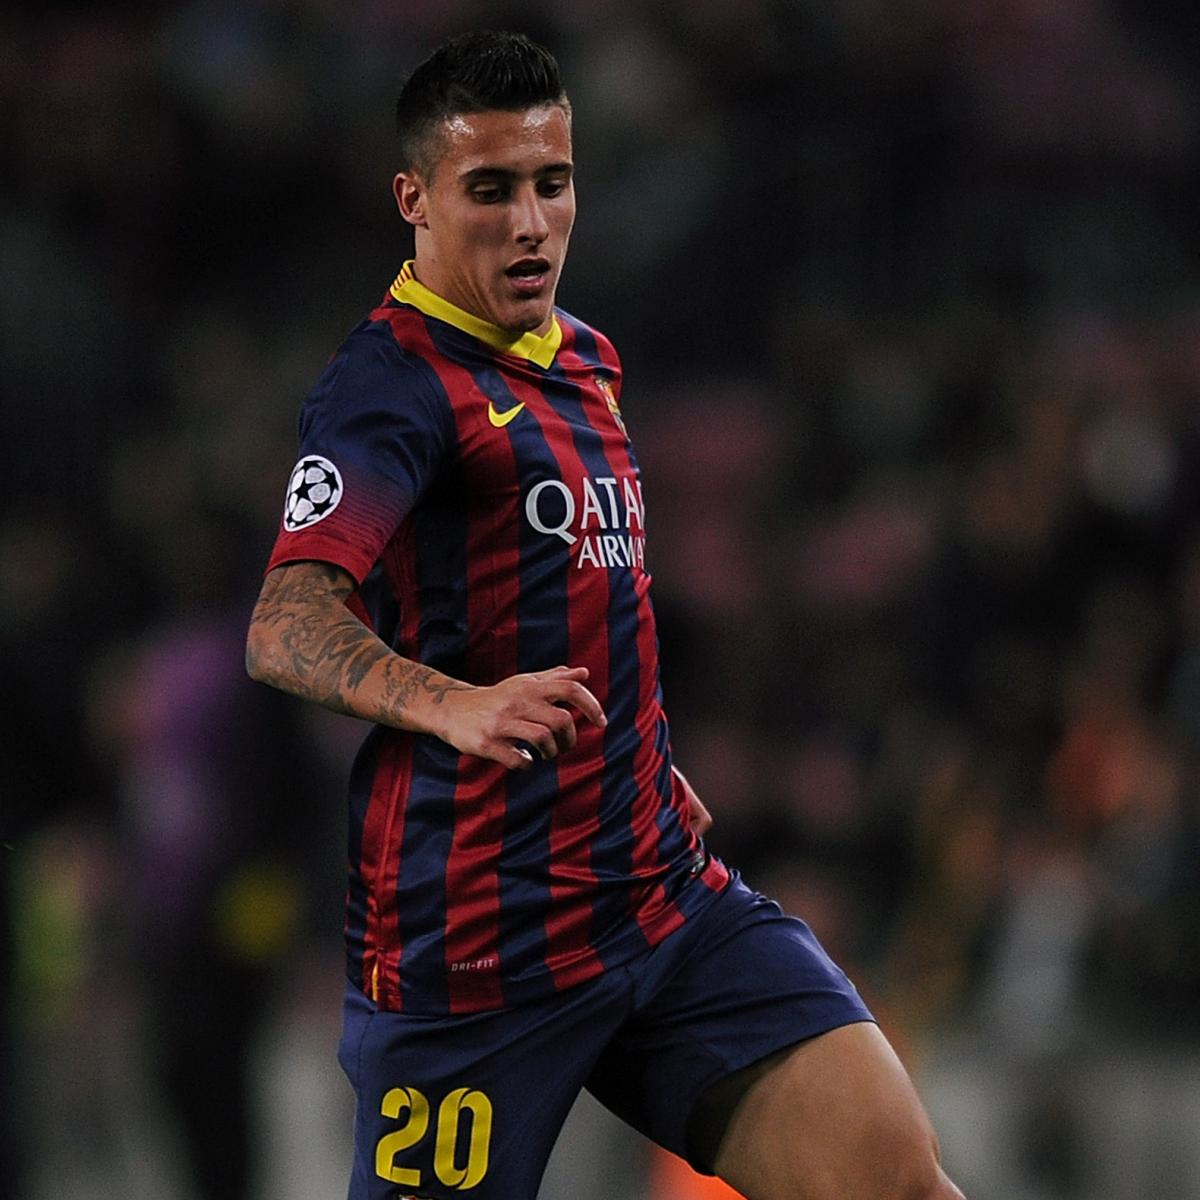 Liverpool Fc Transfer Gossip Reds Close In On Barcelona: Liverpool Transfer News And Rumours Tracker: Week Of